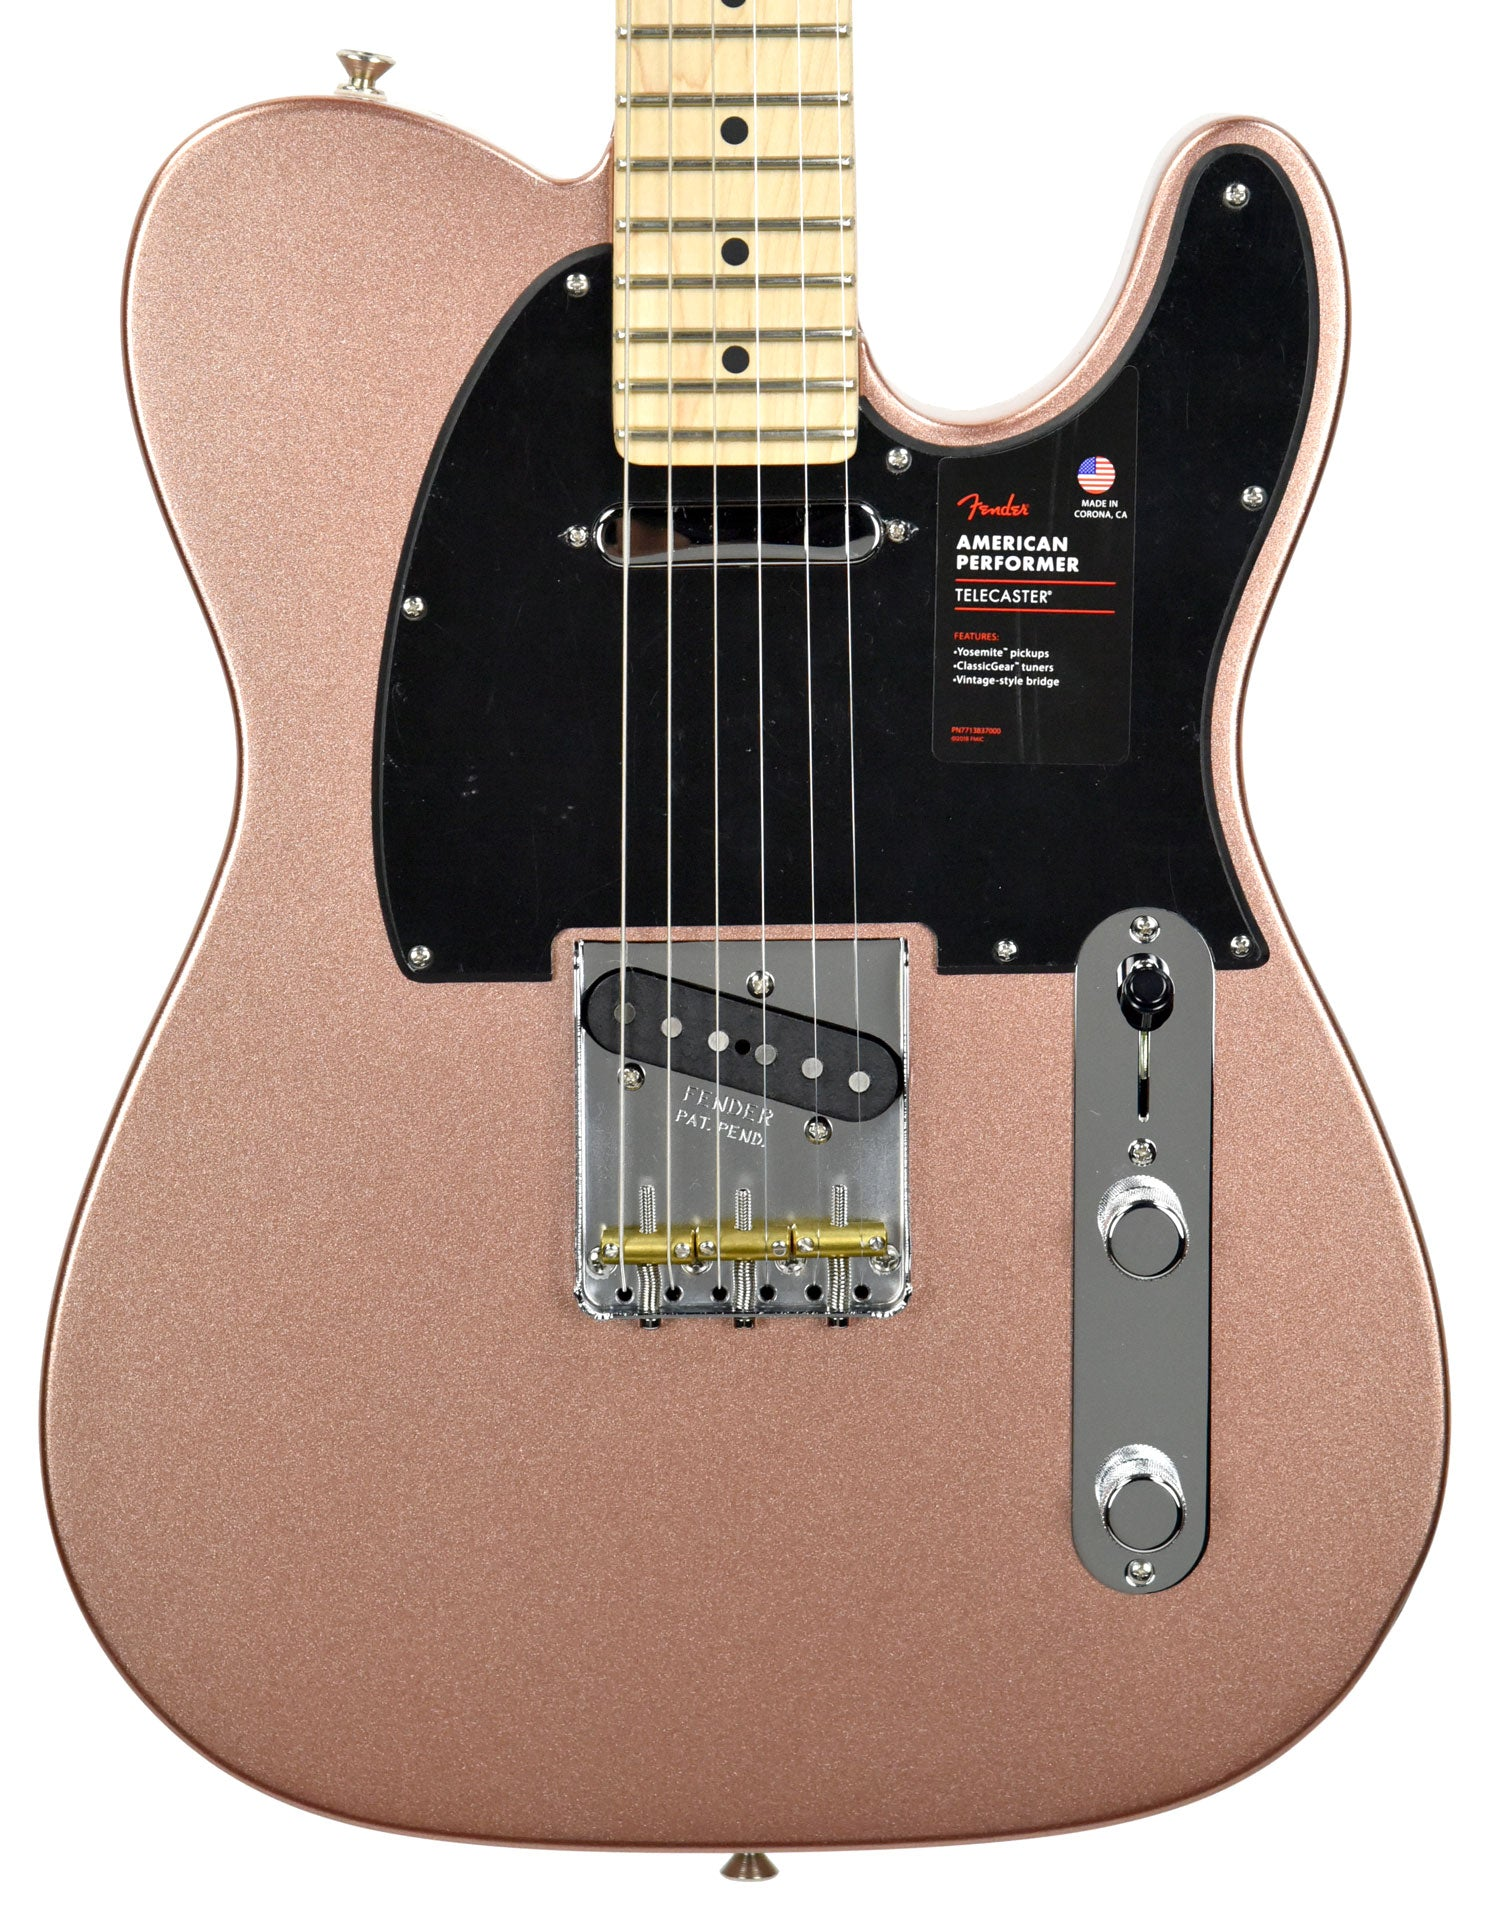 Fender American Performer Telecaster in Penny